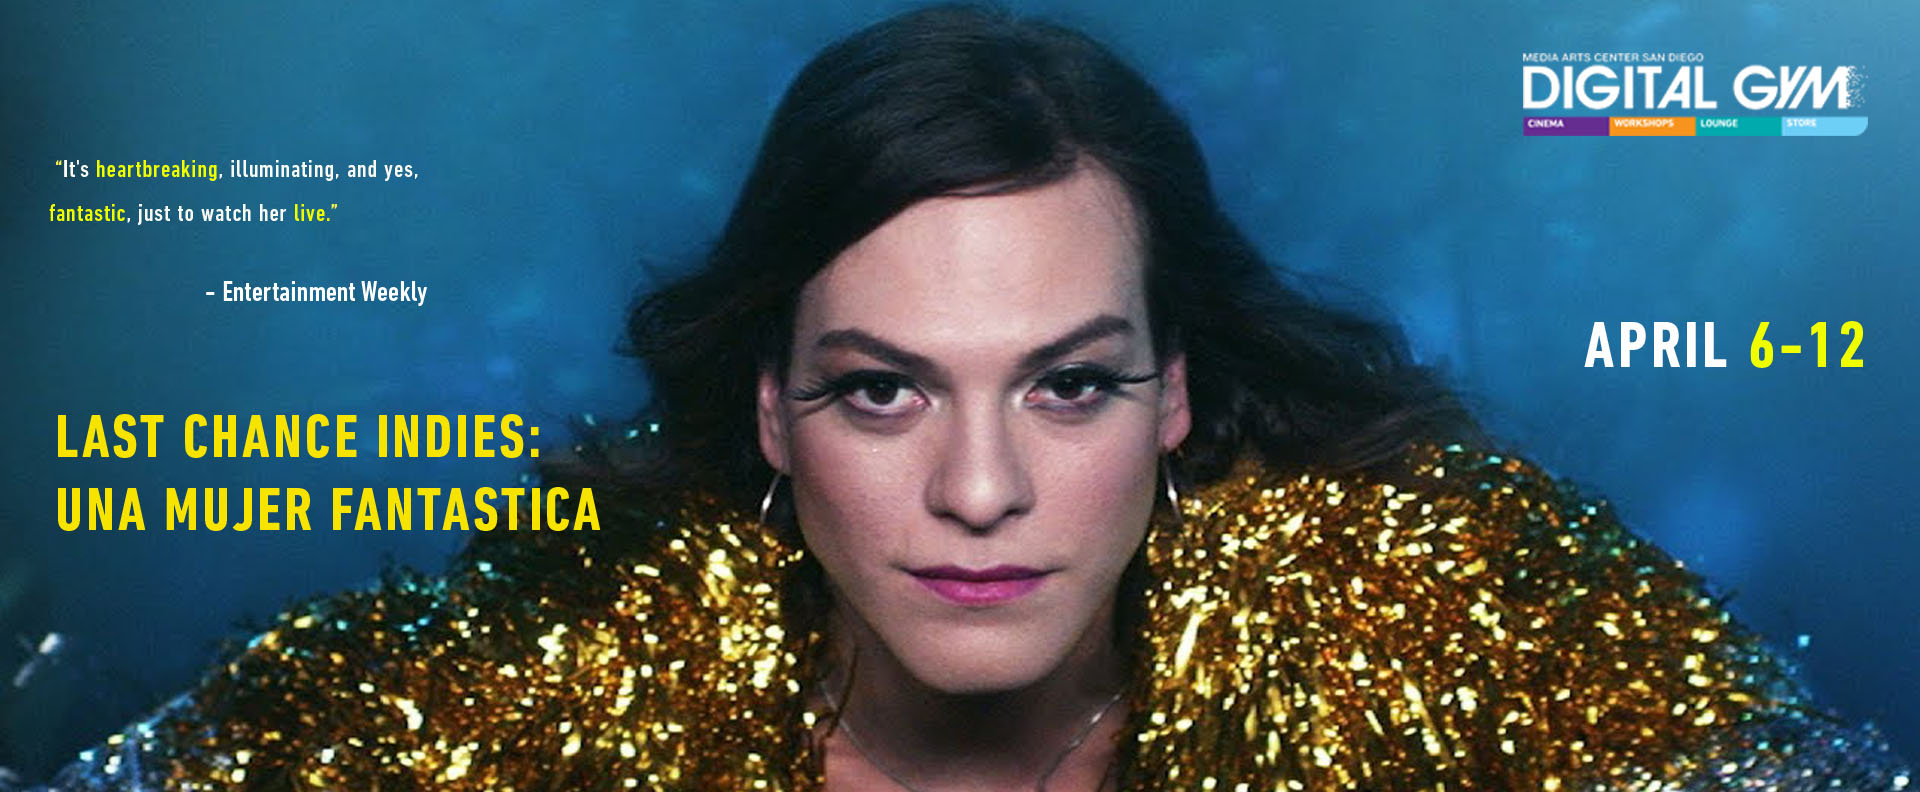 Last Chance Indies: Una Mujer Fantastica (A Fantastic Woman) (April 6 – 19)